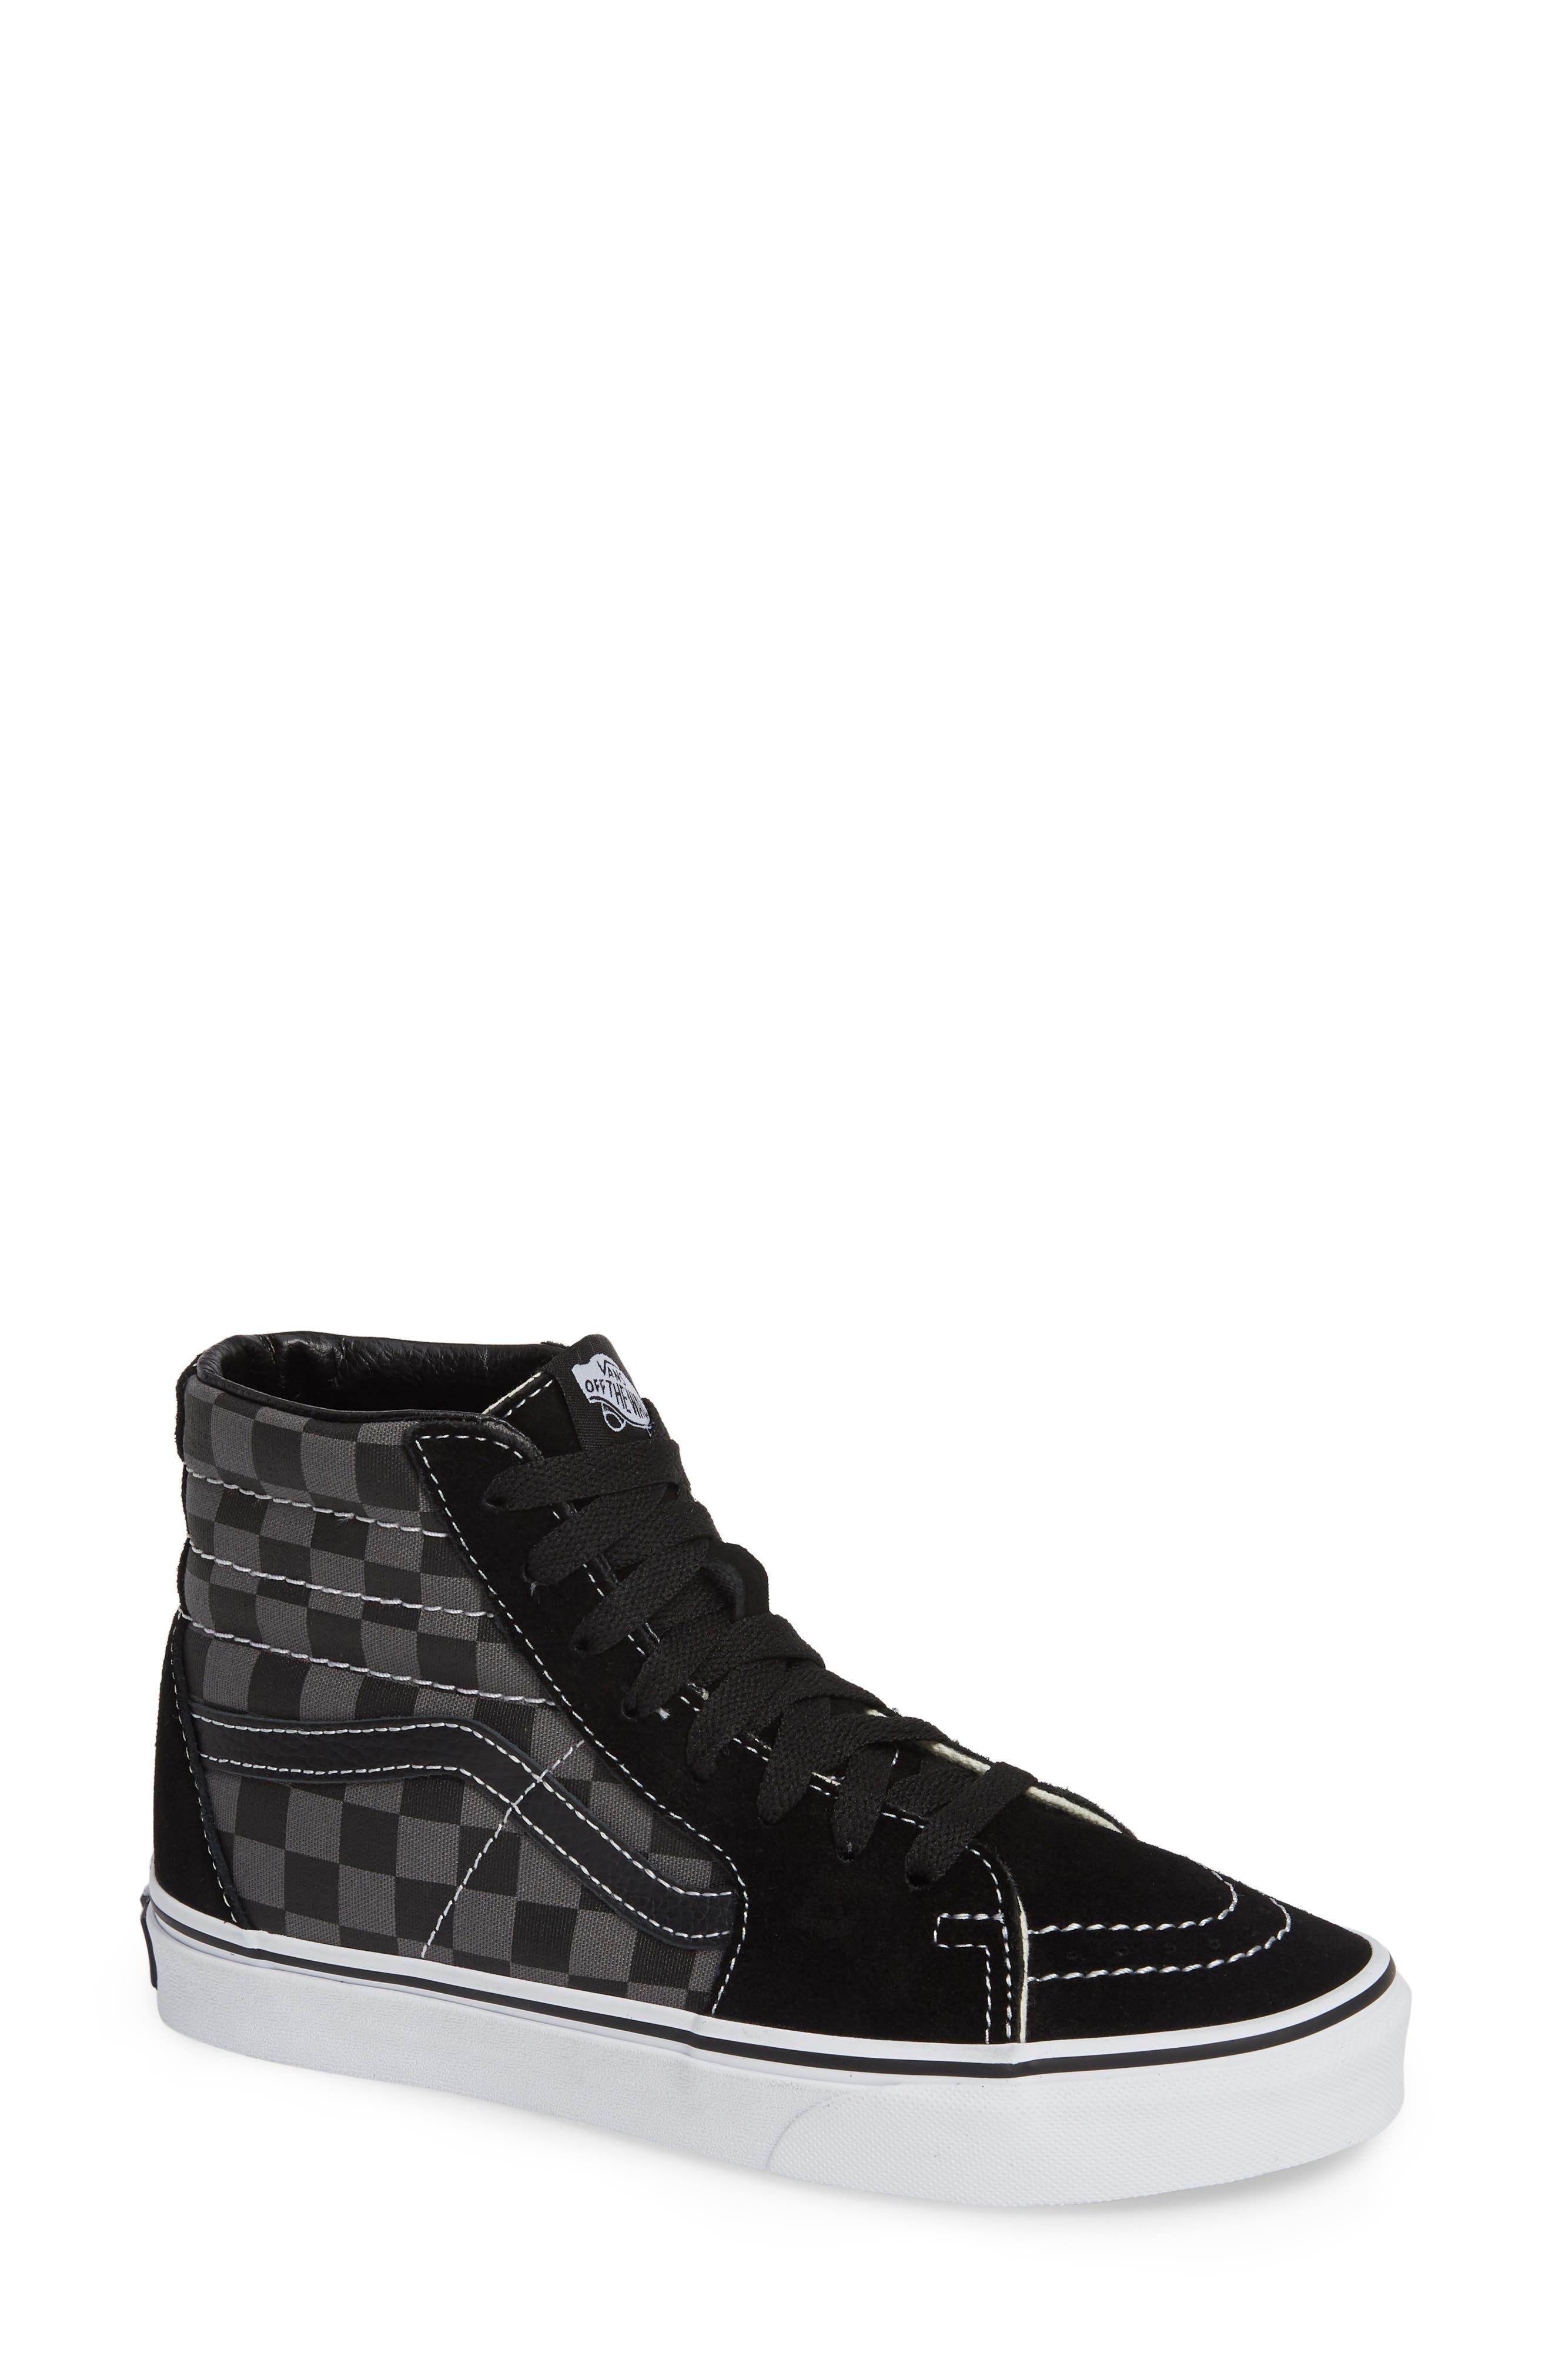 Sk8-Hi Checker Sneaker,                             Main thumbnail 1, color,                             BLACK/ PEWTER CHECKERBOARD